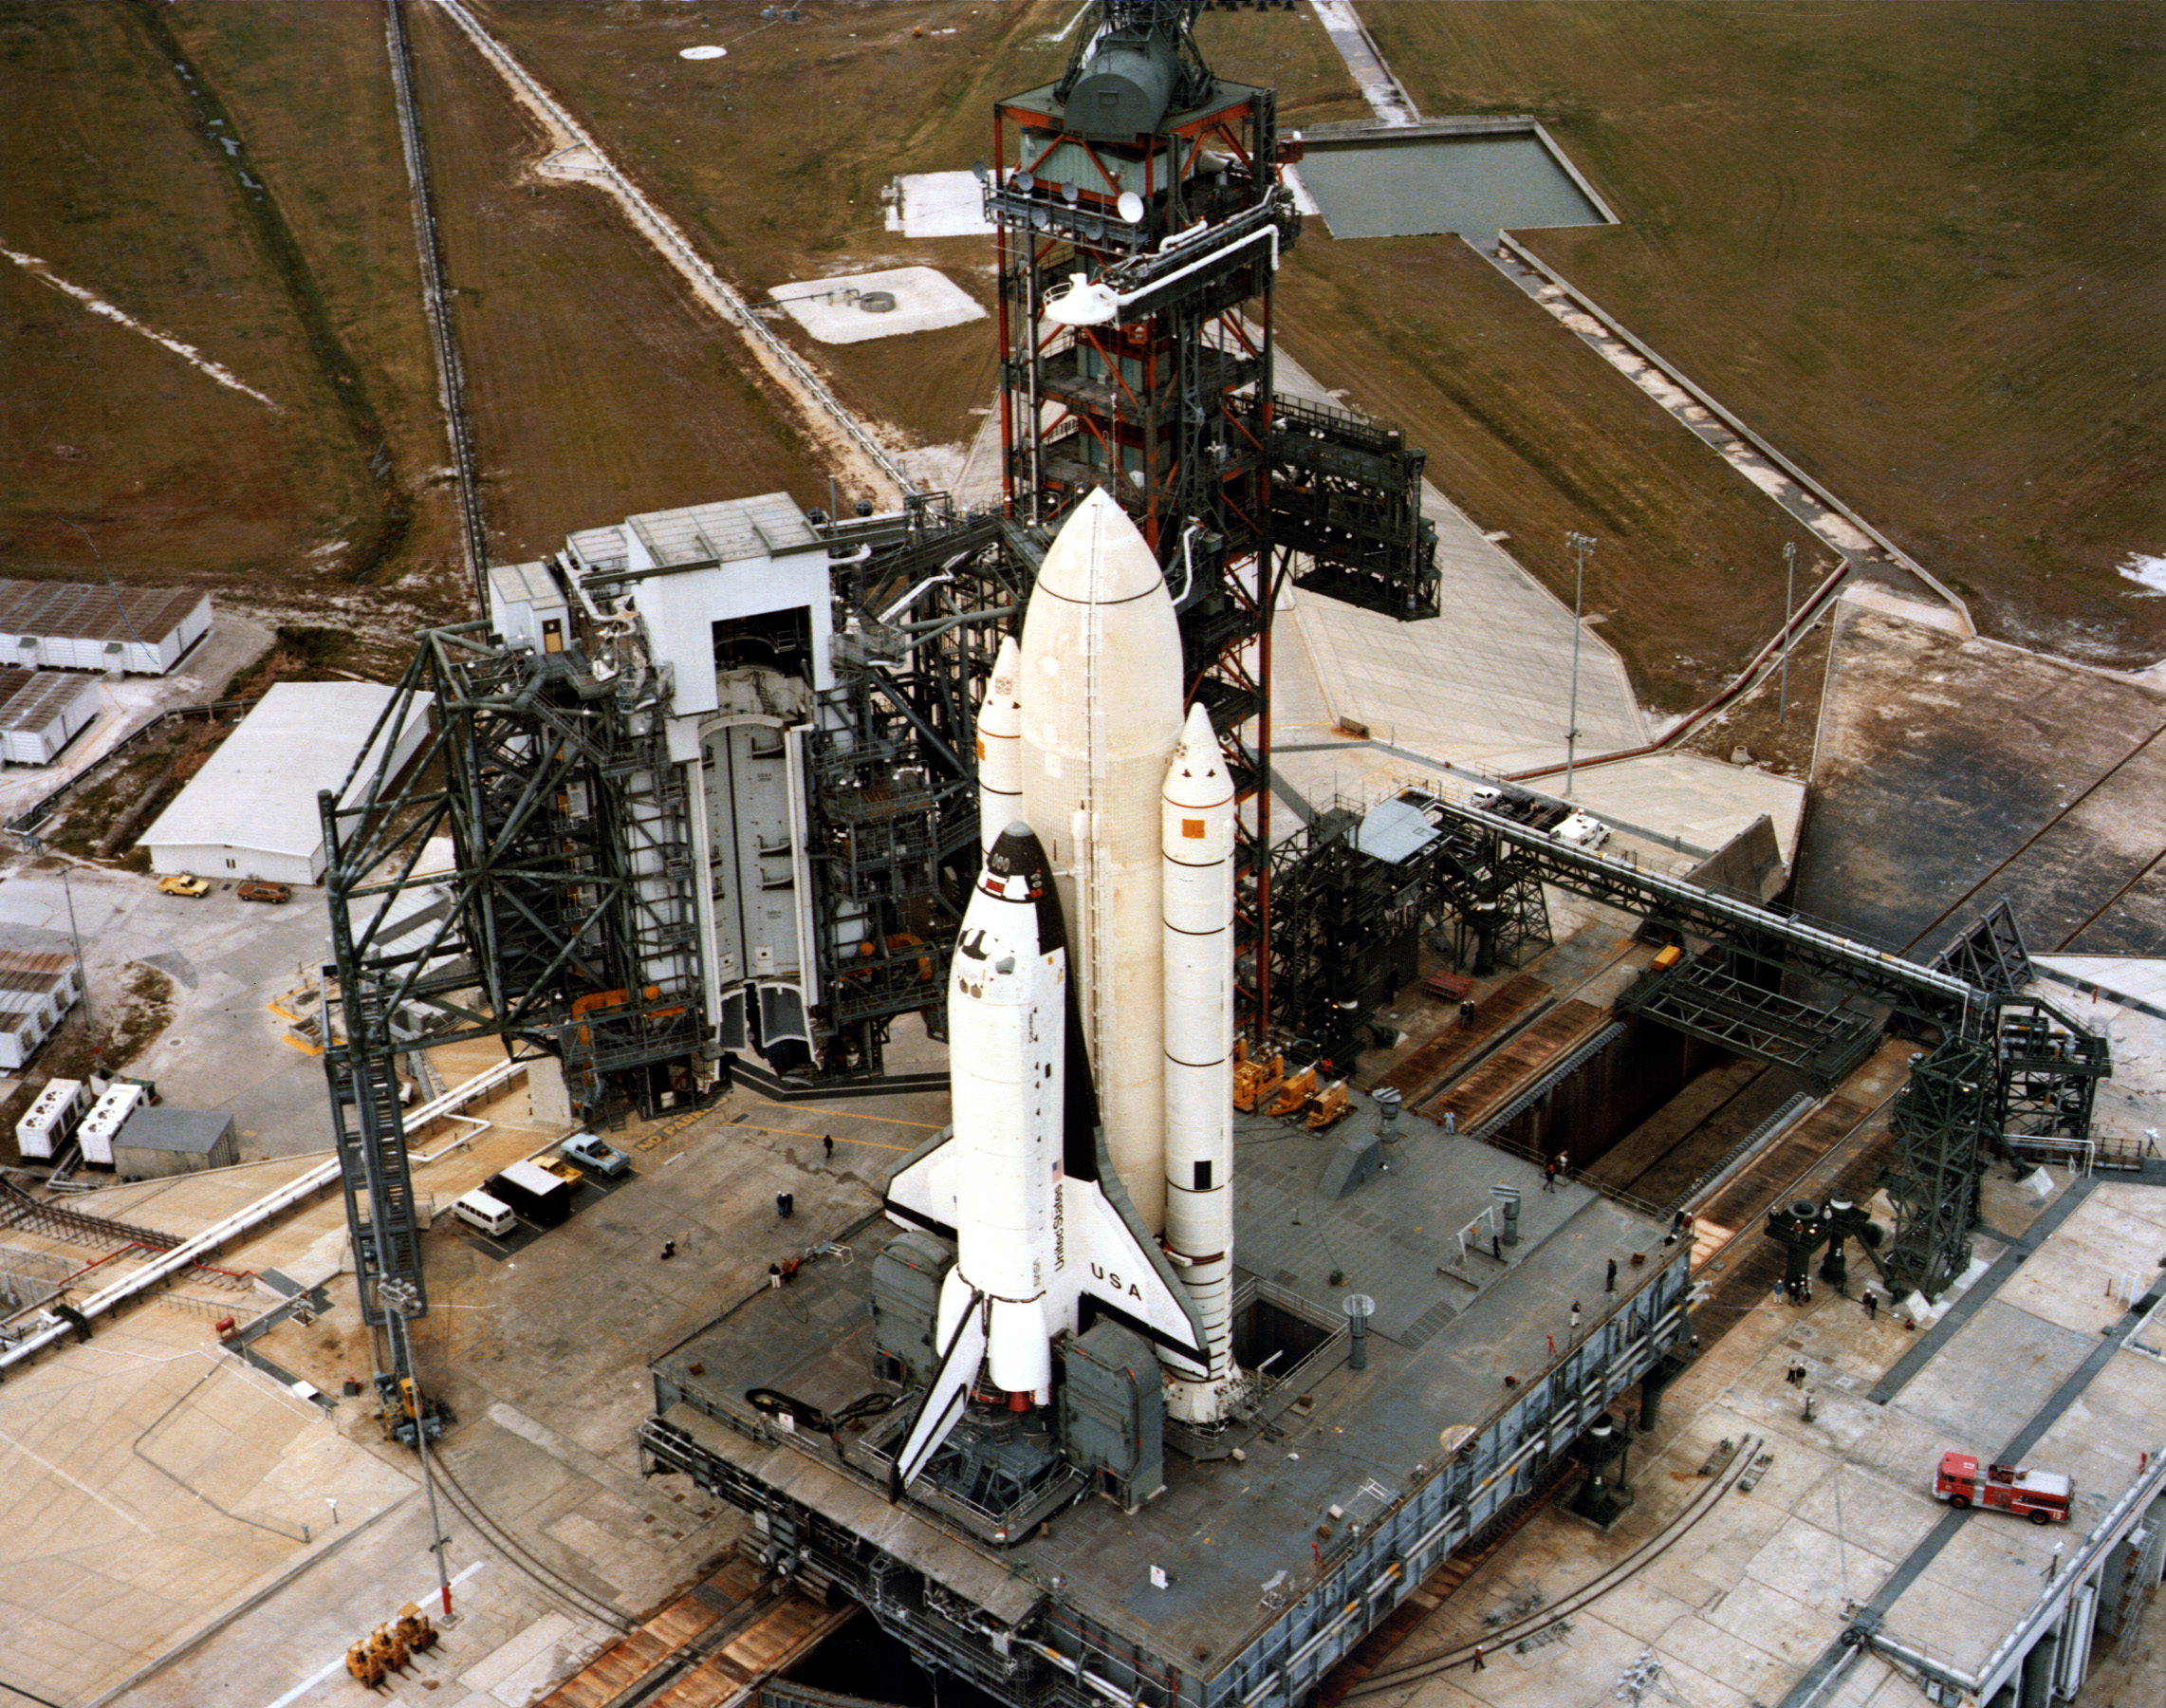 space shuttle program history - photo #10